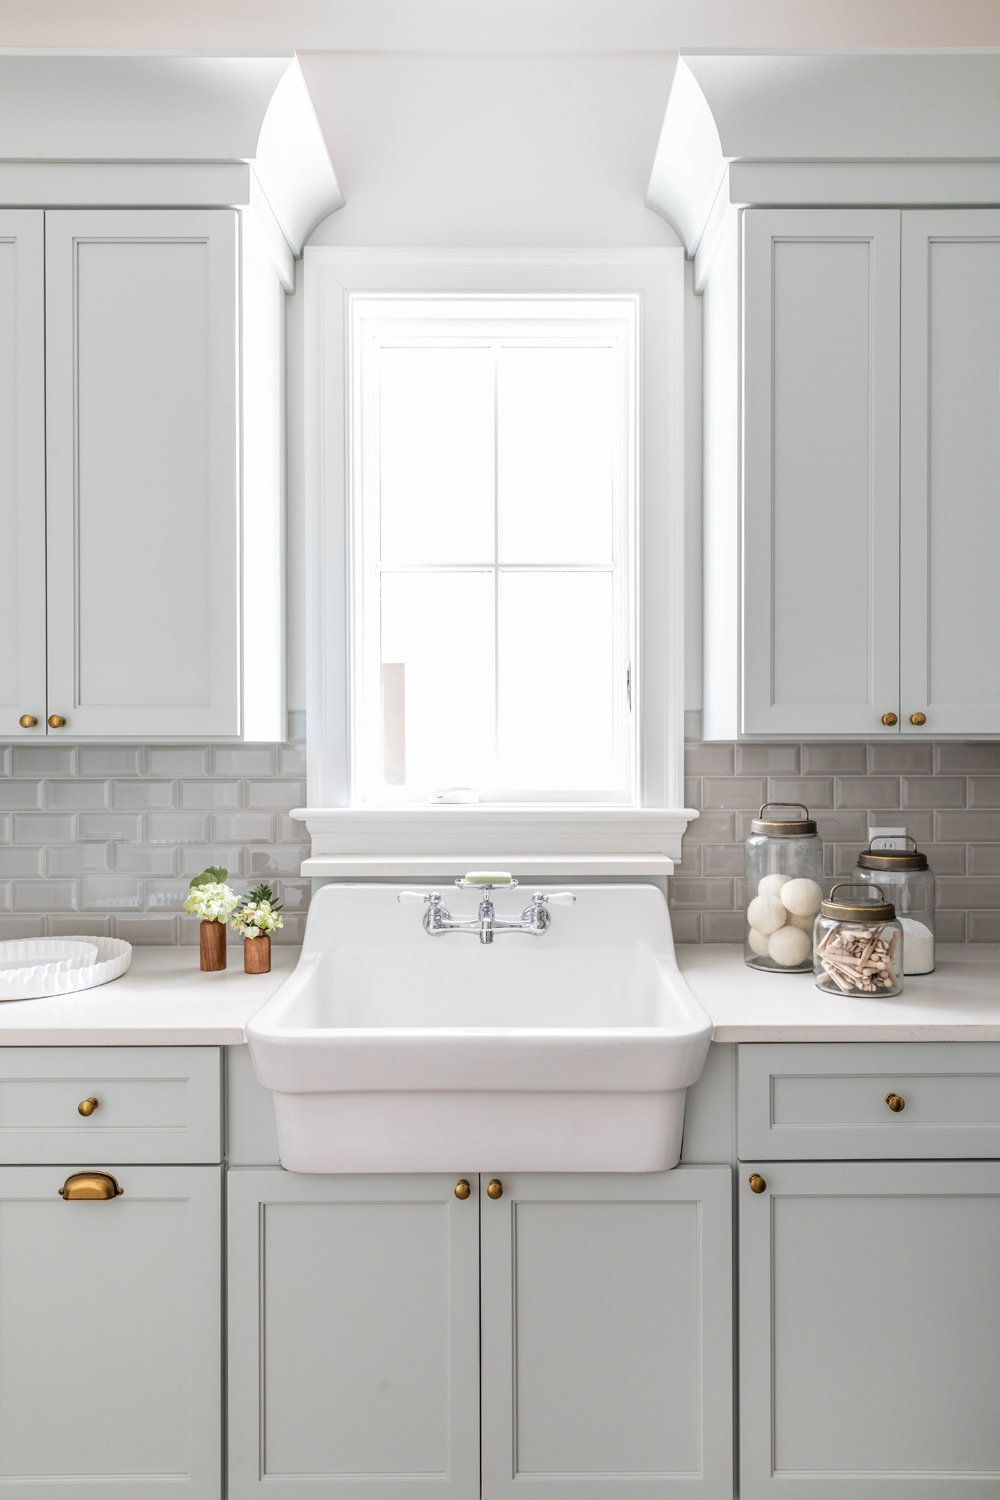 Sherwin-Williams-Silver-Strand-Laundry-Room-with-Kohler-Utility-Sink-and-Brick-Herringbone-Floor-2